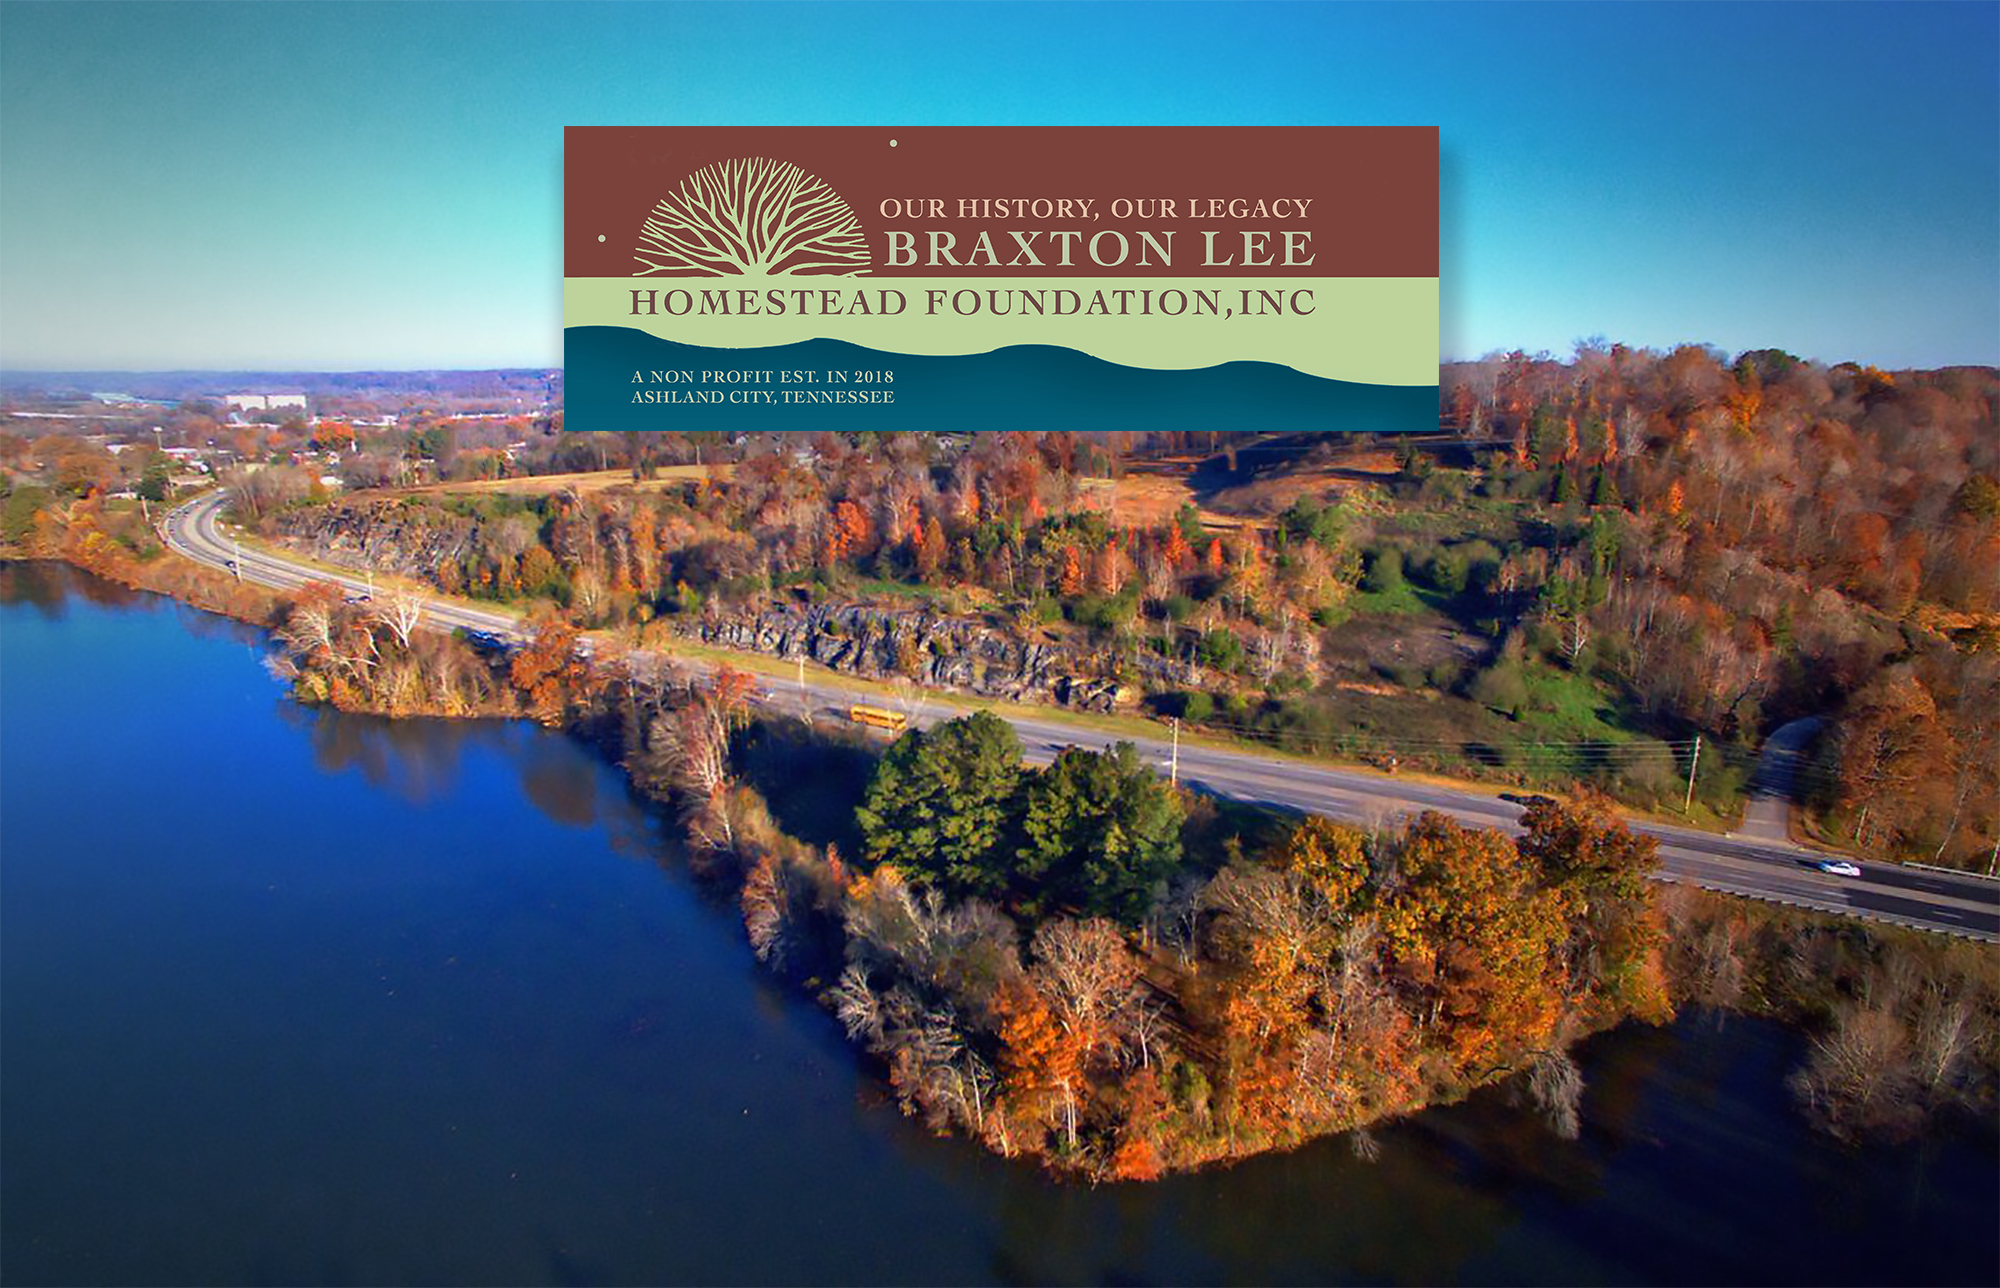 Braxton Lee Homestead Foundation